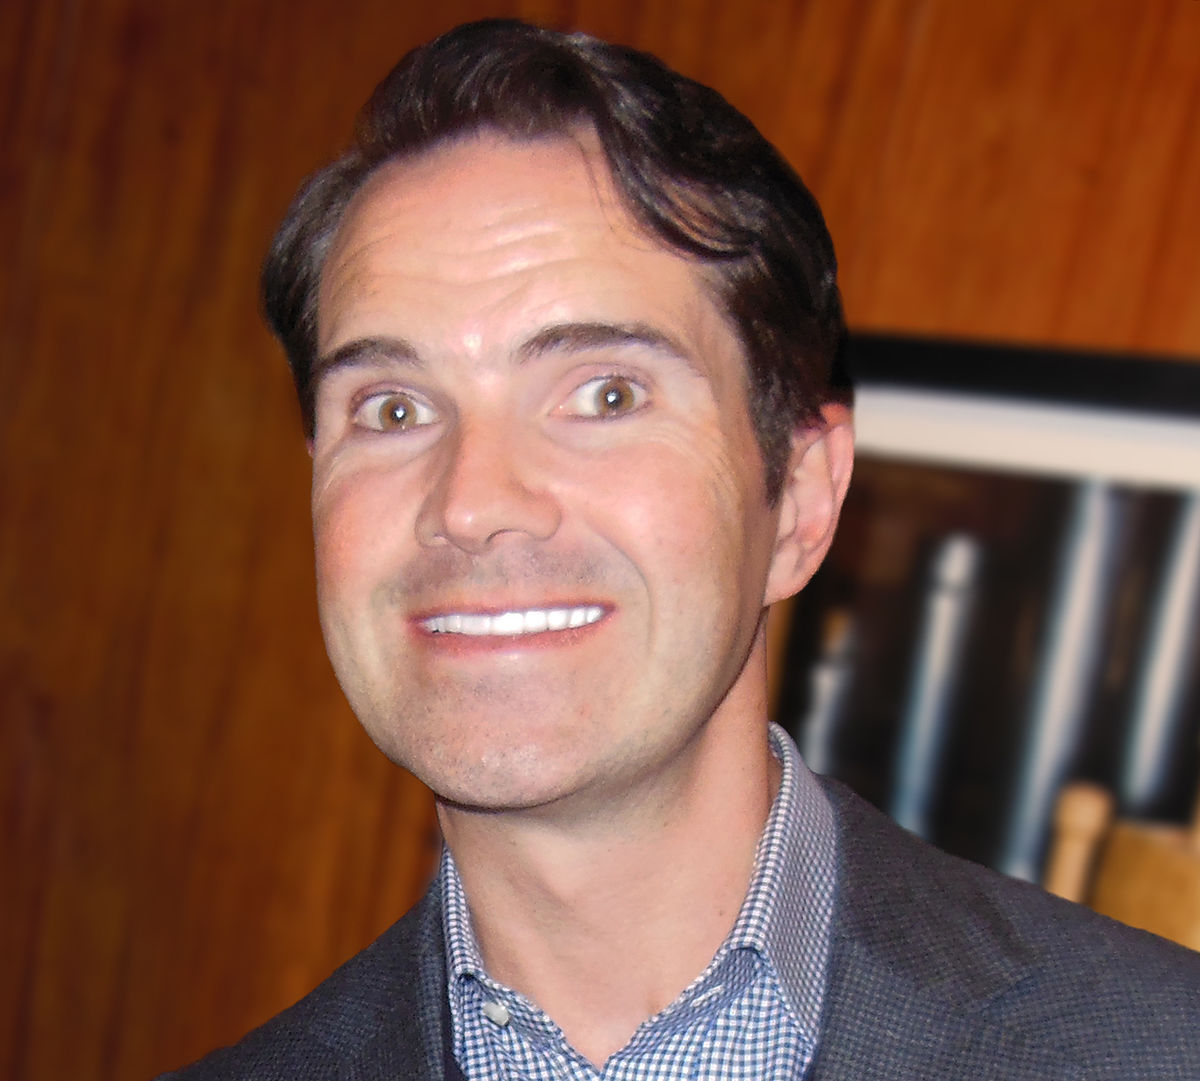 https://upload.wikimedia.org/wikipedia/commons/thumb/9/94/Jimmy_Carr%2C_2015-04-13_3_%28crop%29.jpg/1200px-Jimmy_Carr%2C_2015-04-13_3_%28crop%29.jpg